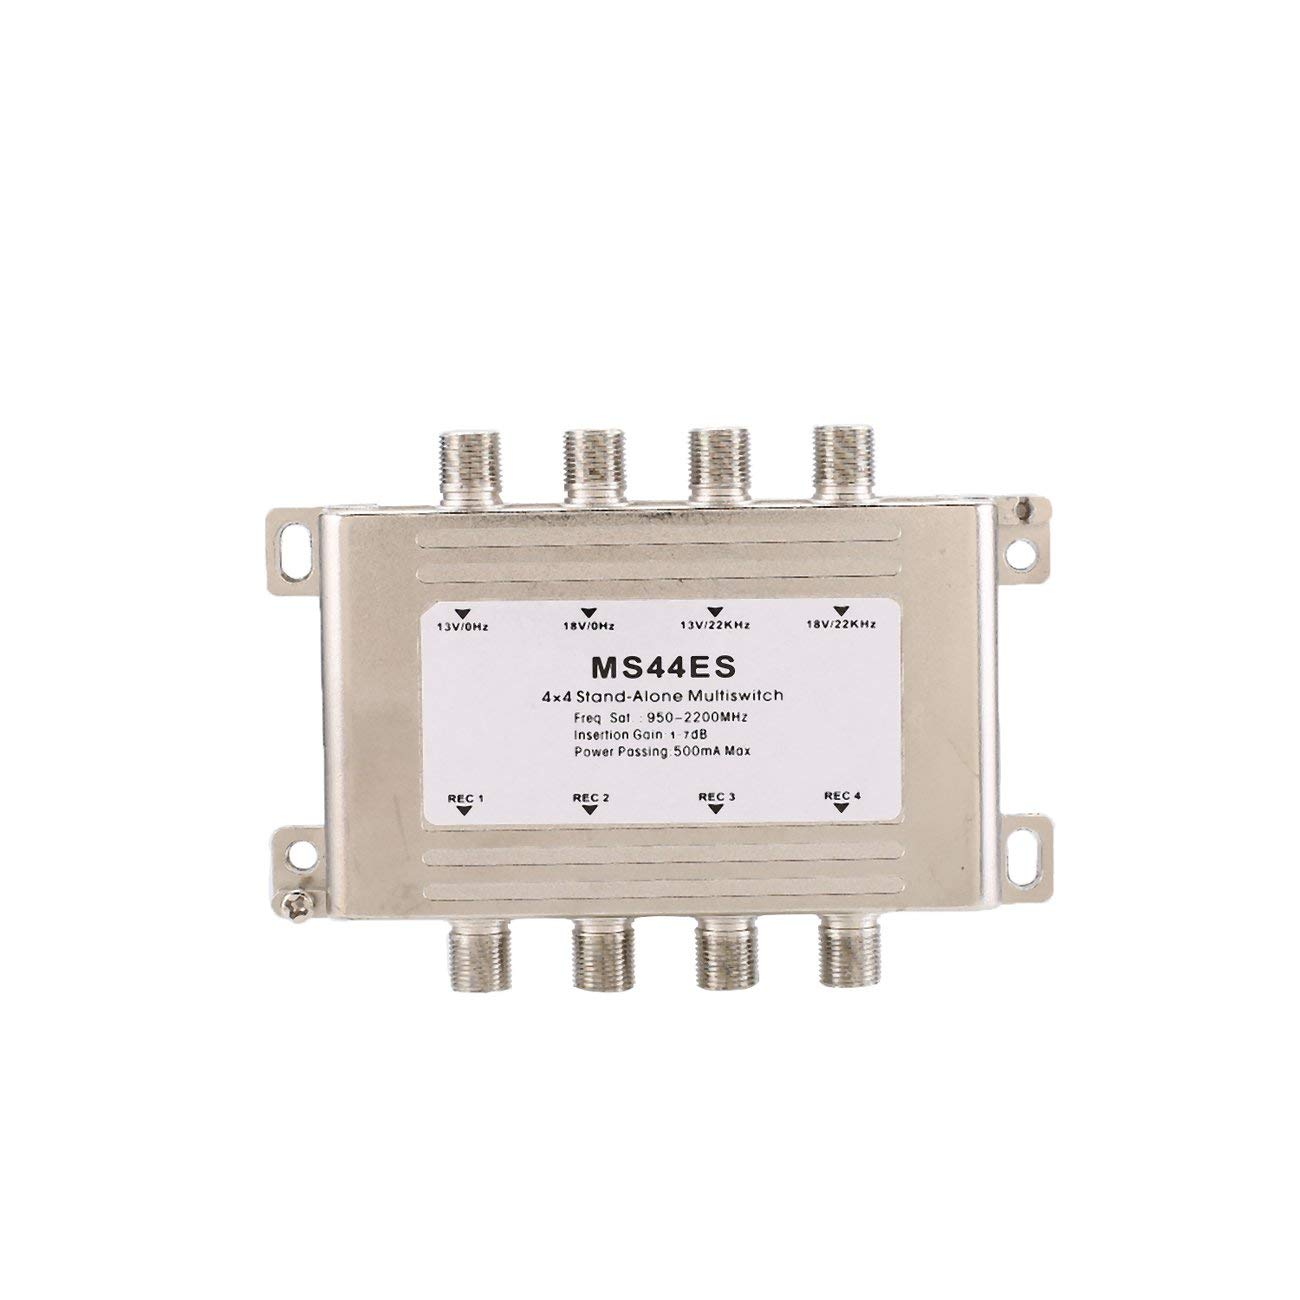 Amazon.com: Satellite Signal LNB Voltage Selected Switch Low ...